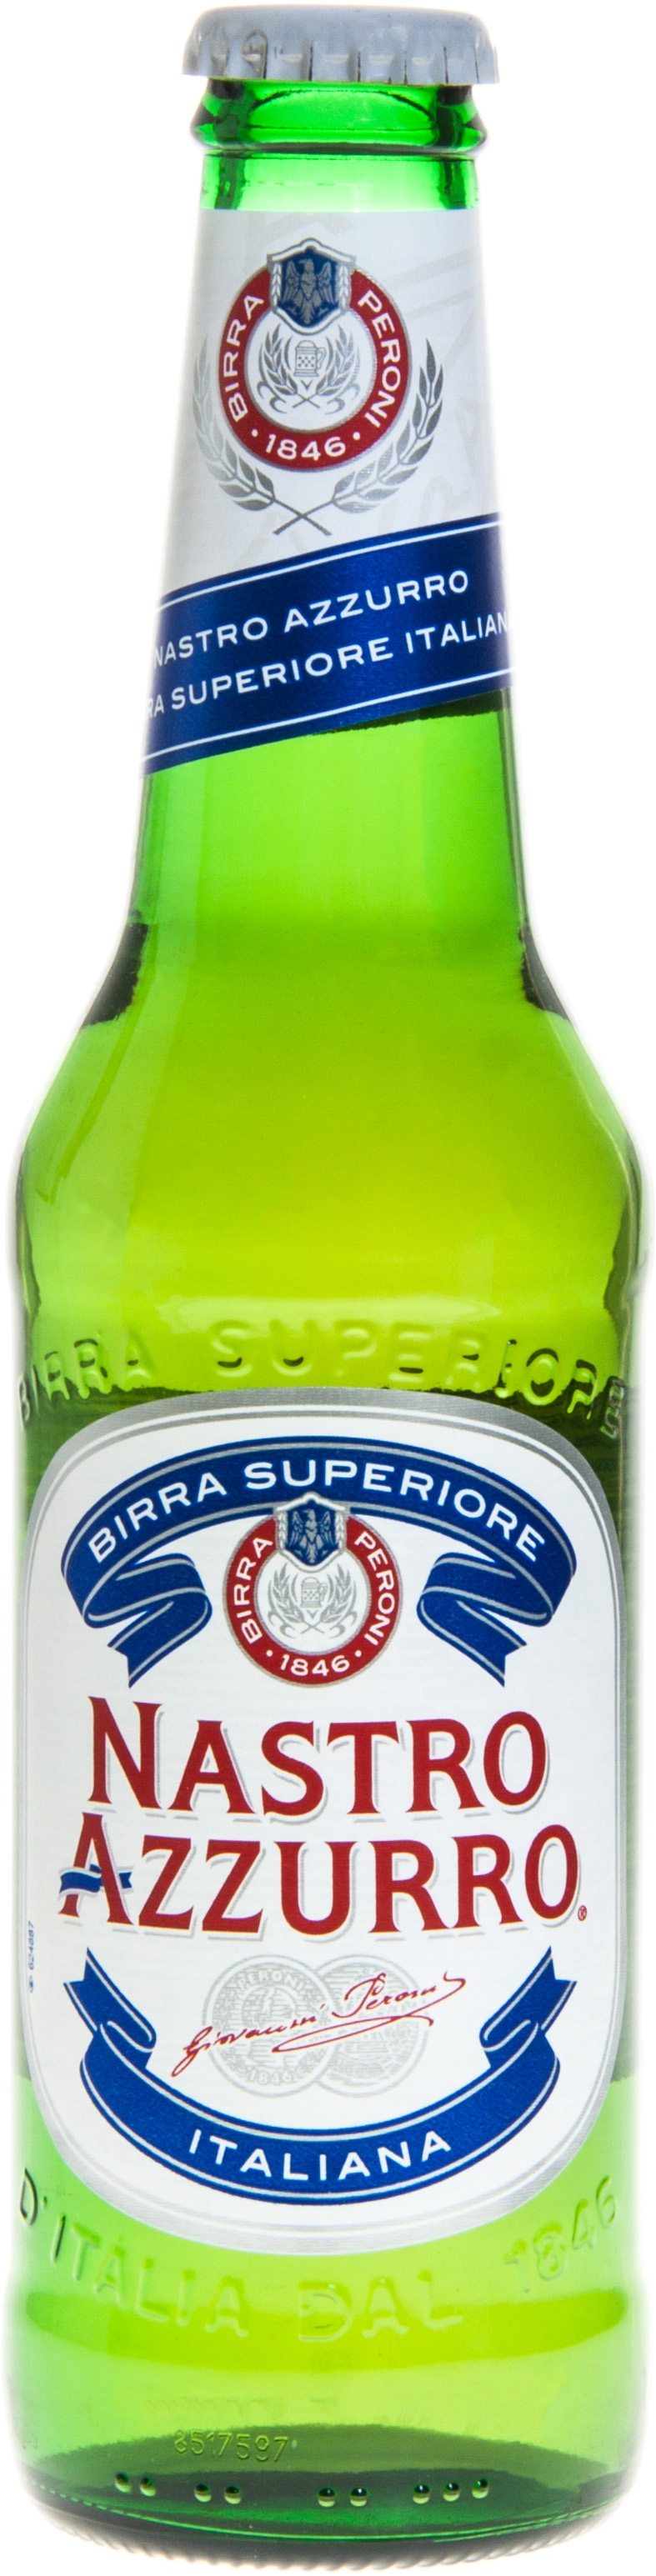 Birra superiore italiana